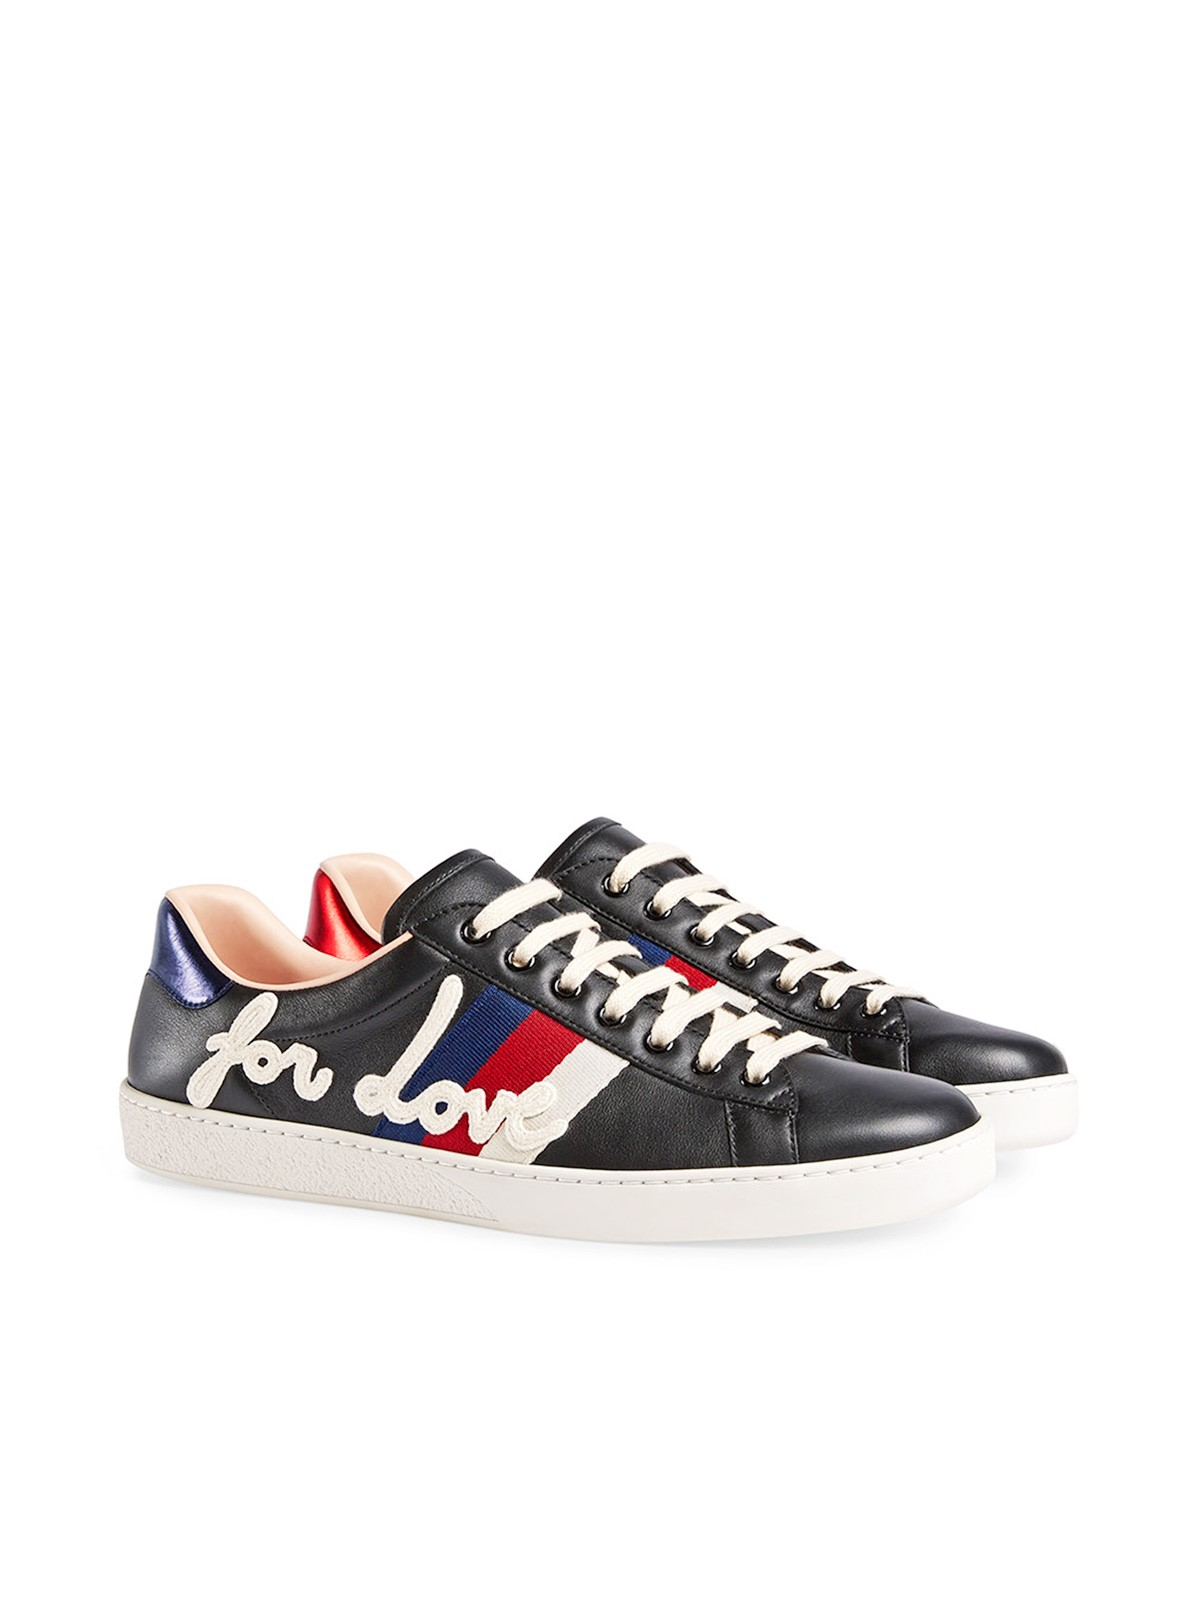 ff919c2ac gucci BLIND FOR LOVE SNEAKERS available on montiboutique.com - 21488